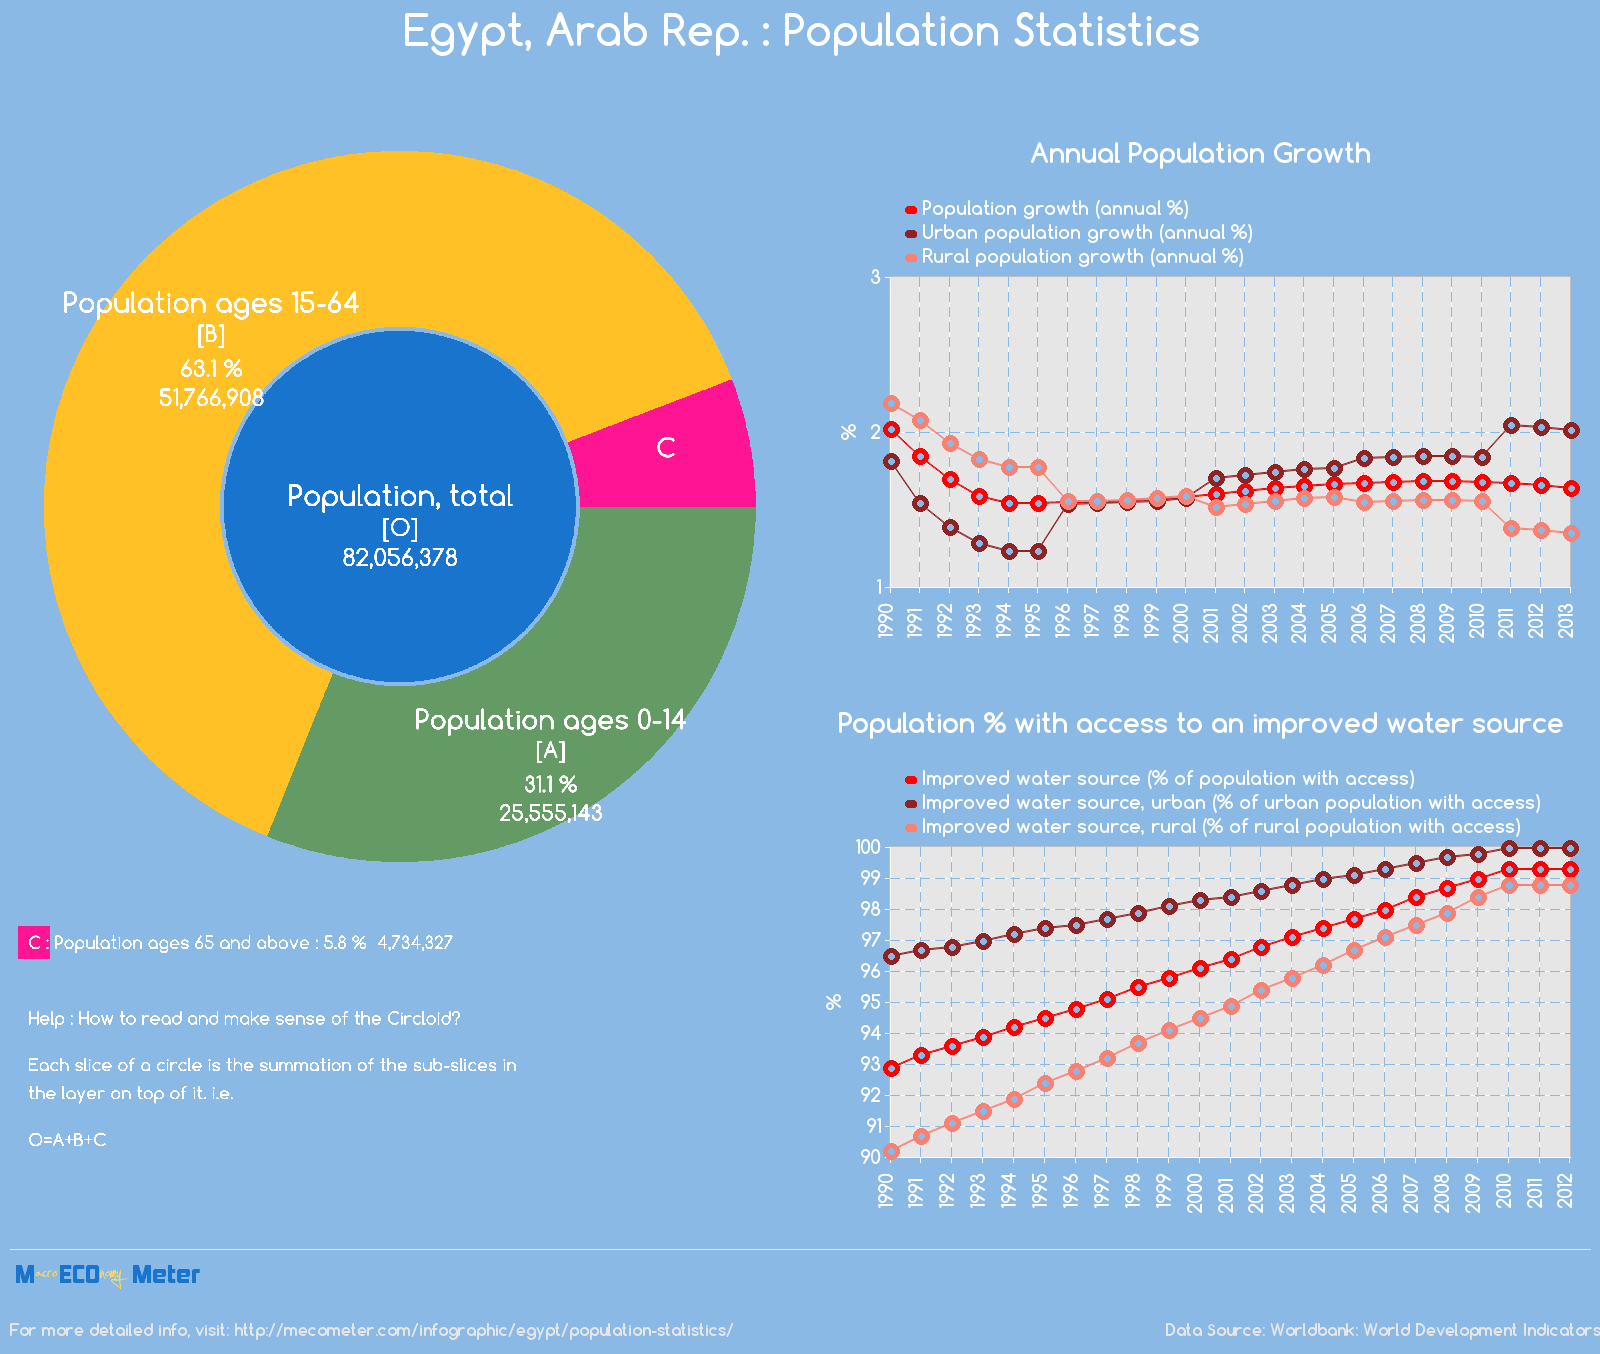 Egypt, Arab Rep. : Population Statistics